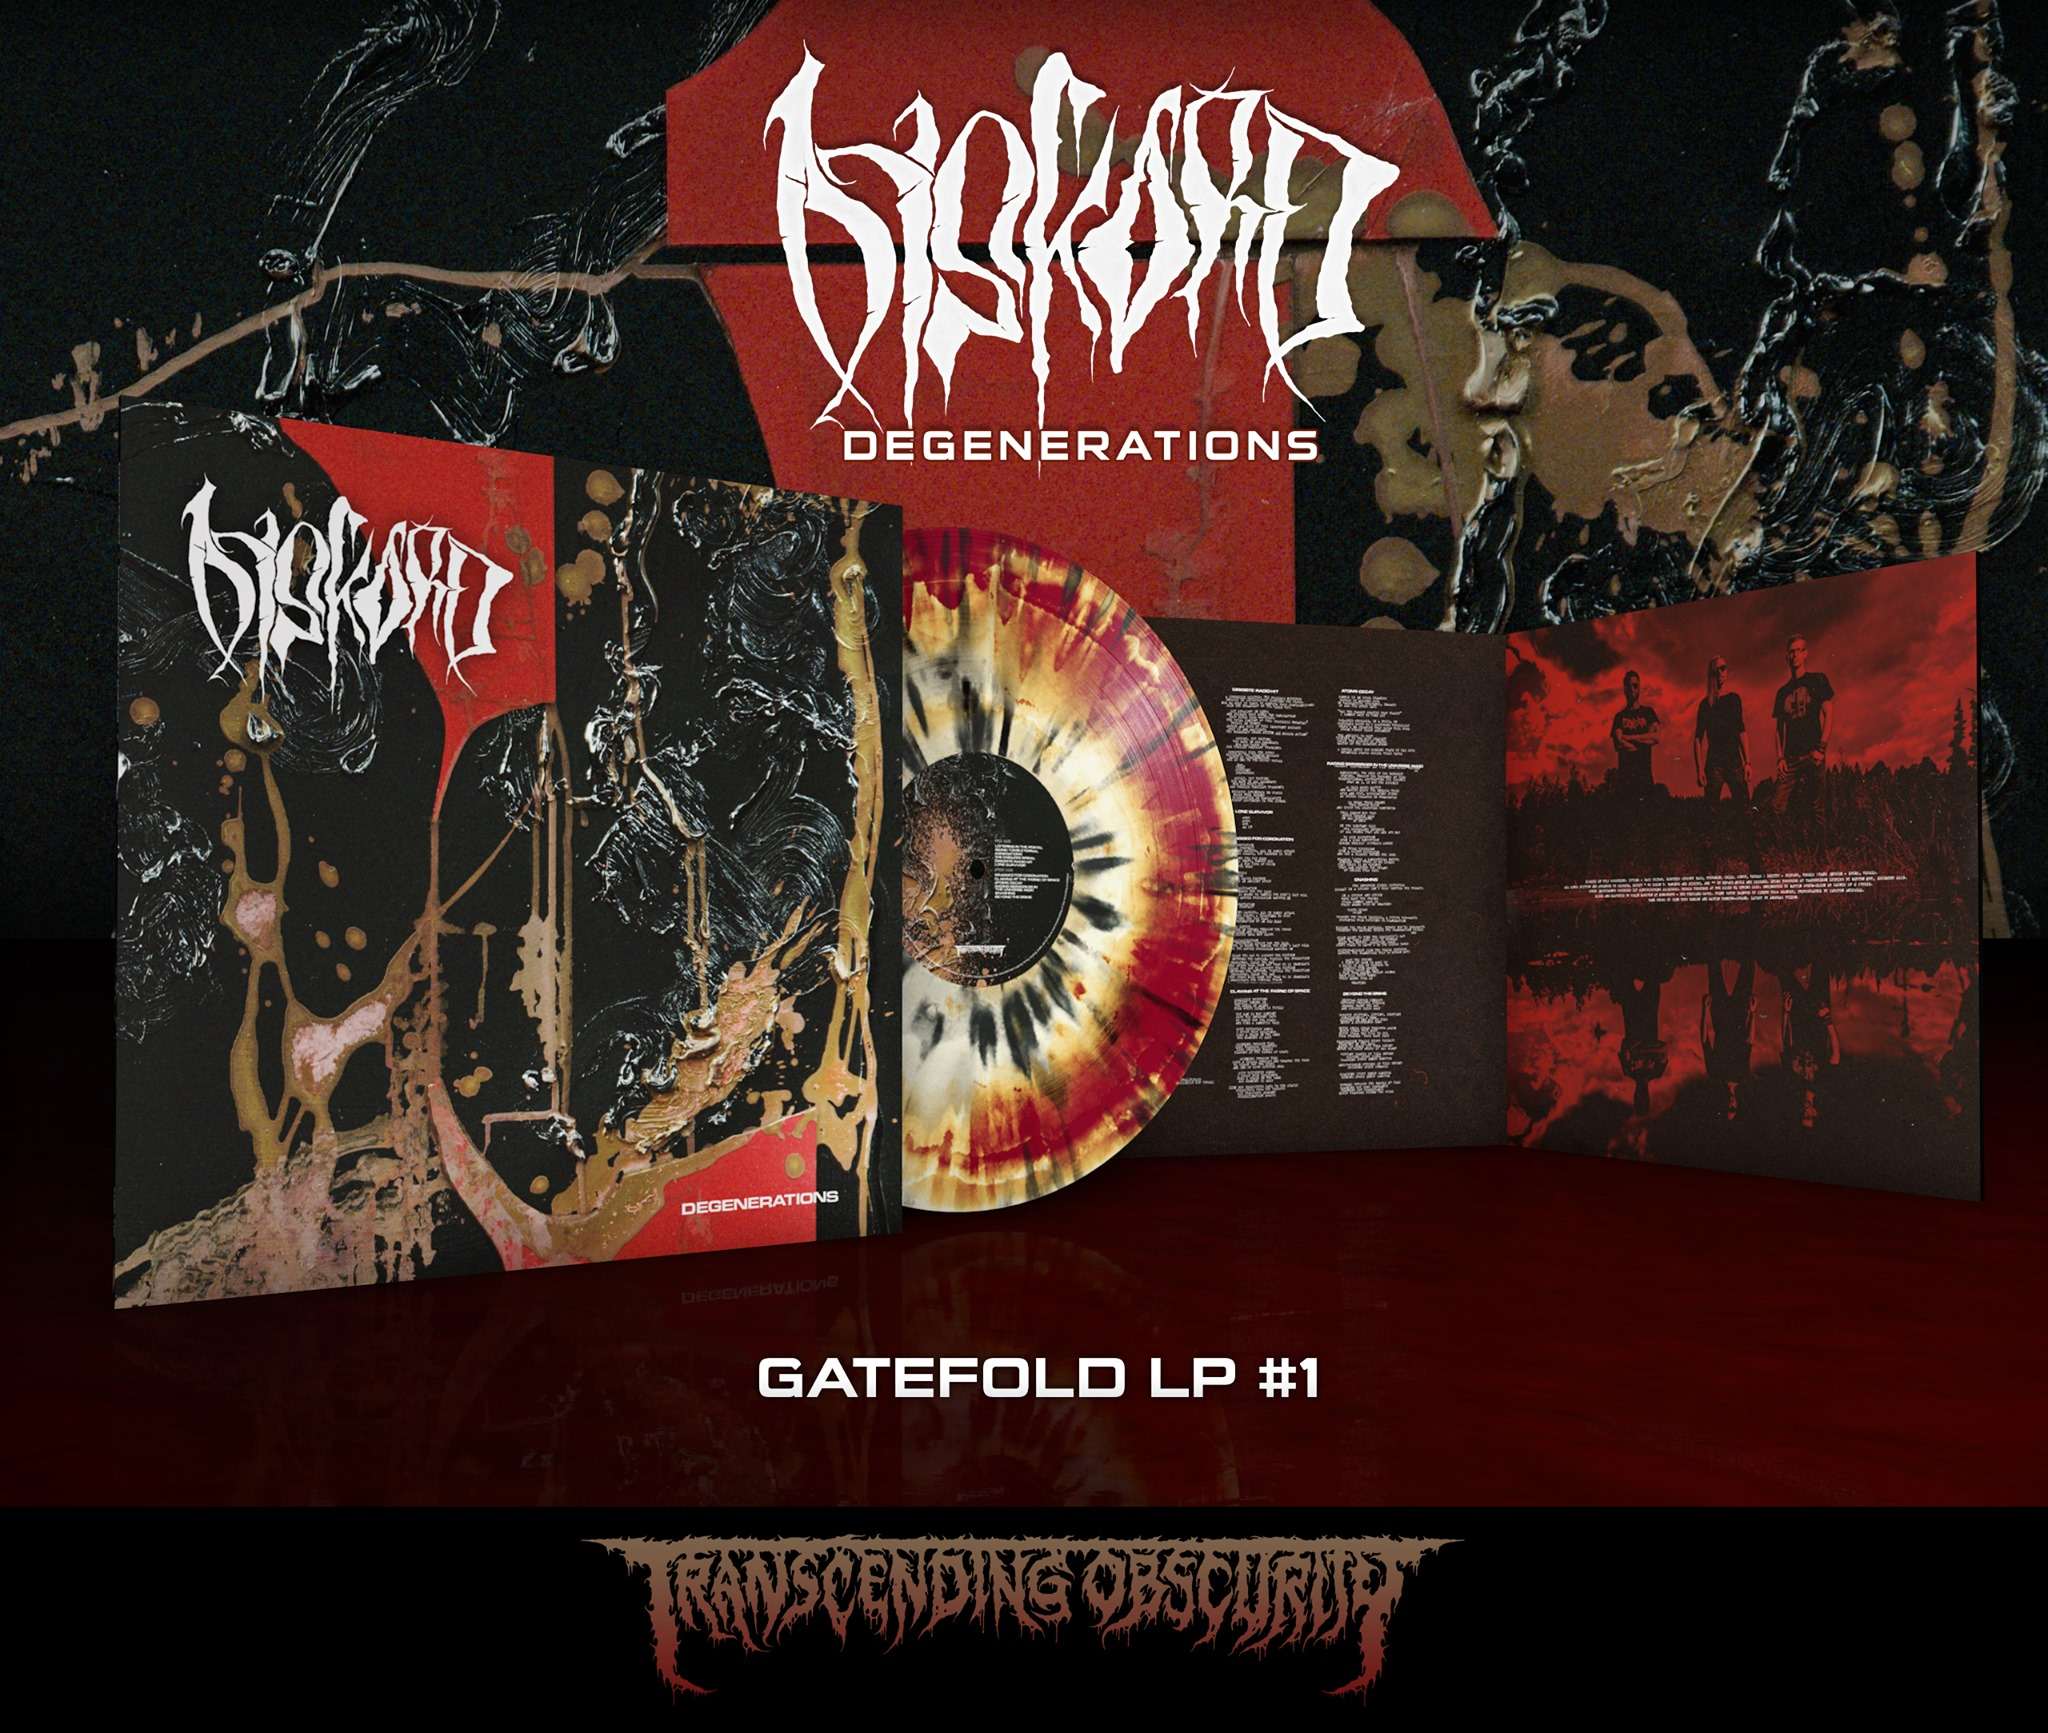 DISKORD - Degenerations Gatefold LP with Metallic Effect and Embossing (Limited to 75 per variant)